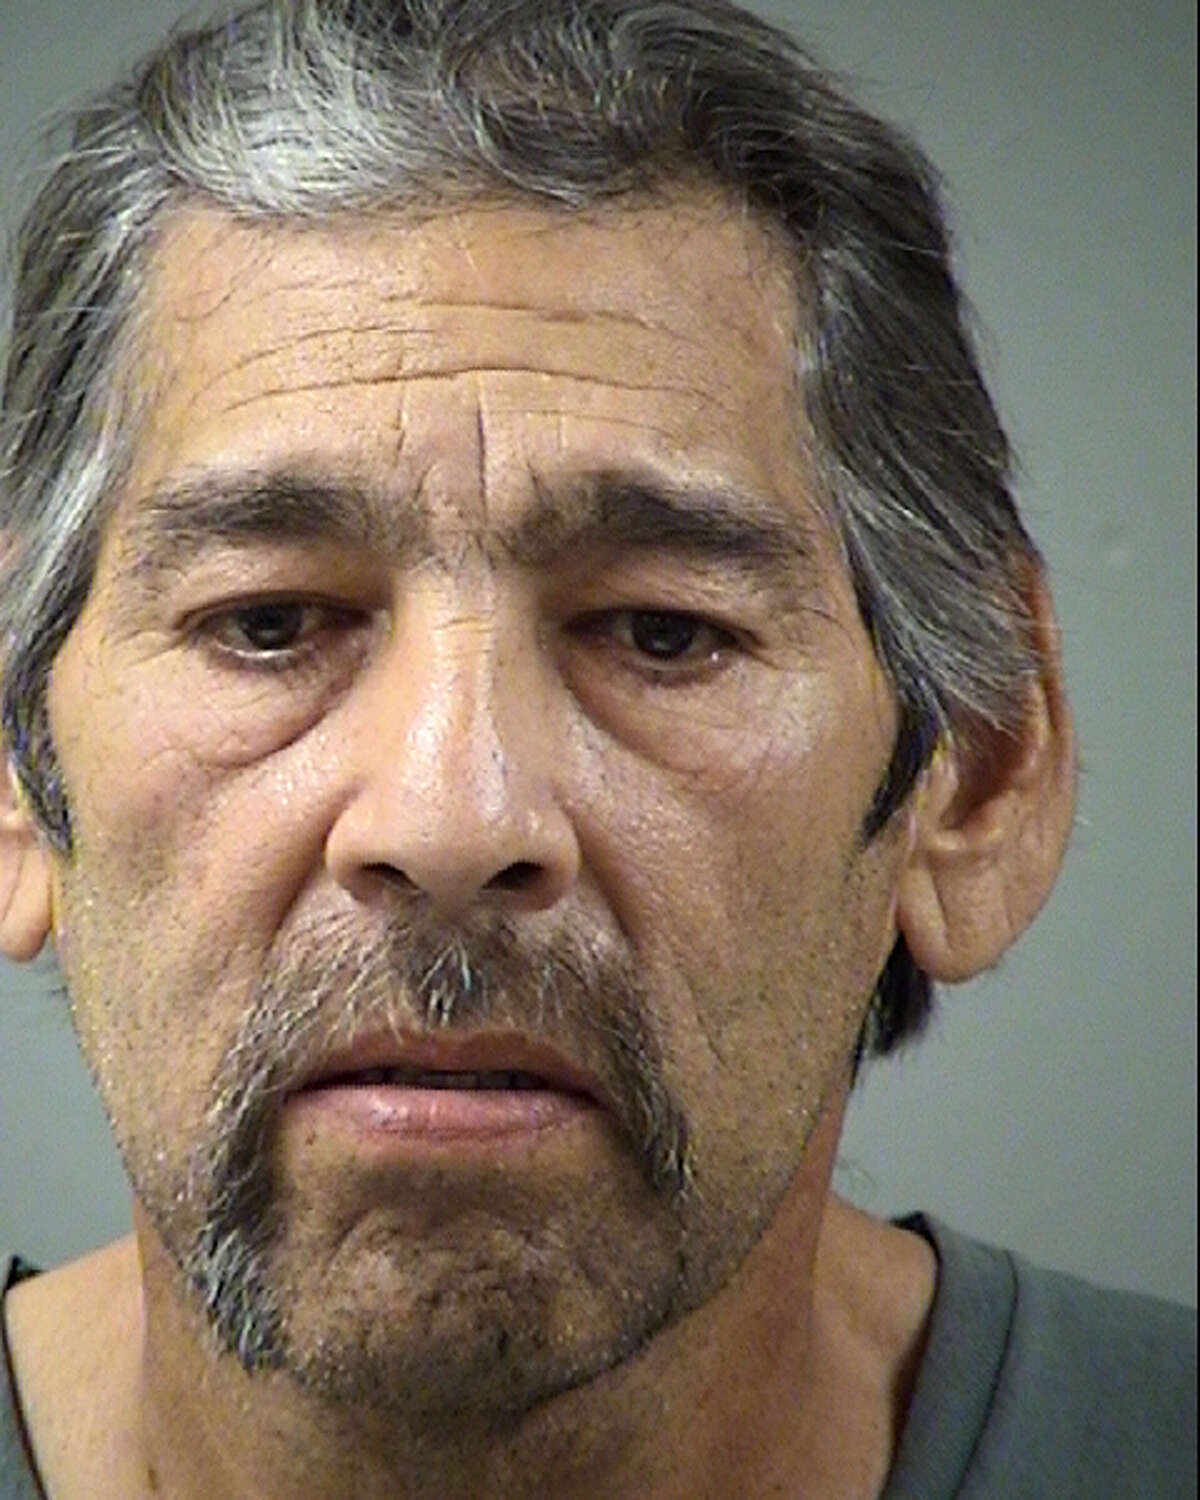 Antonio Nunez, 59, is accused of stabbing his girlfriend in the butt with a pitchfork.